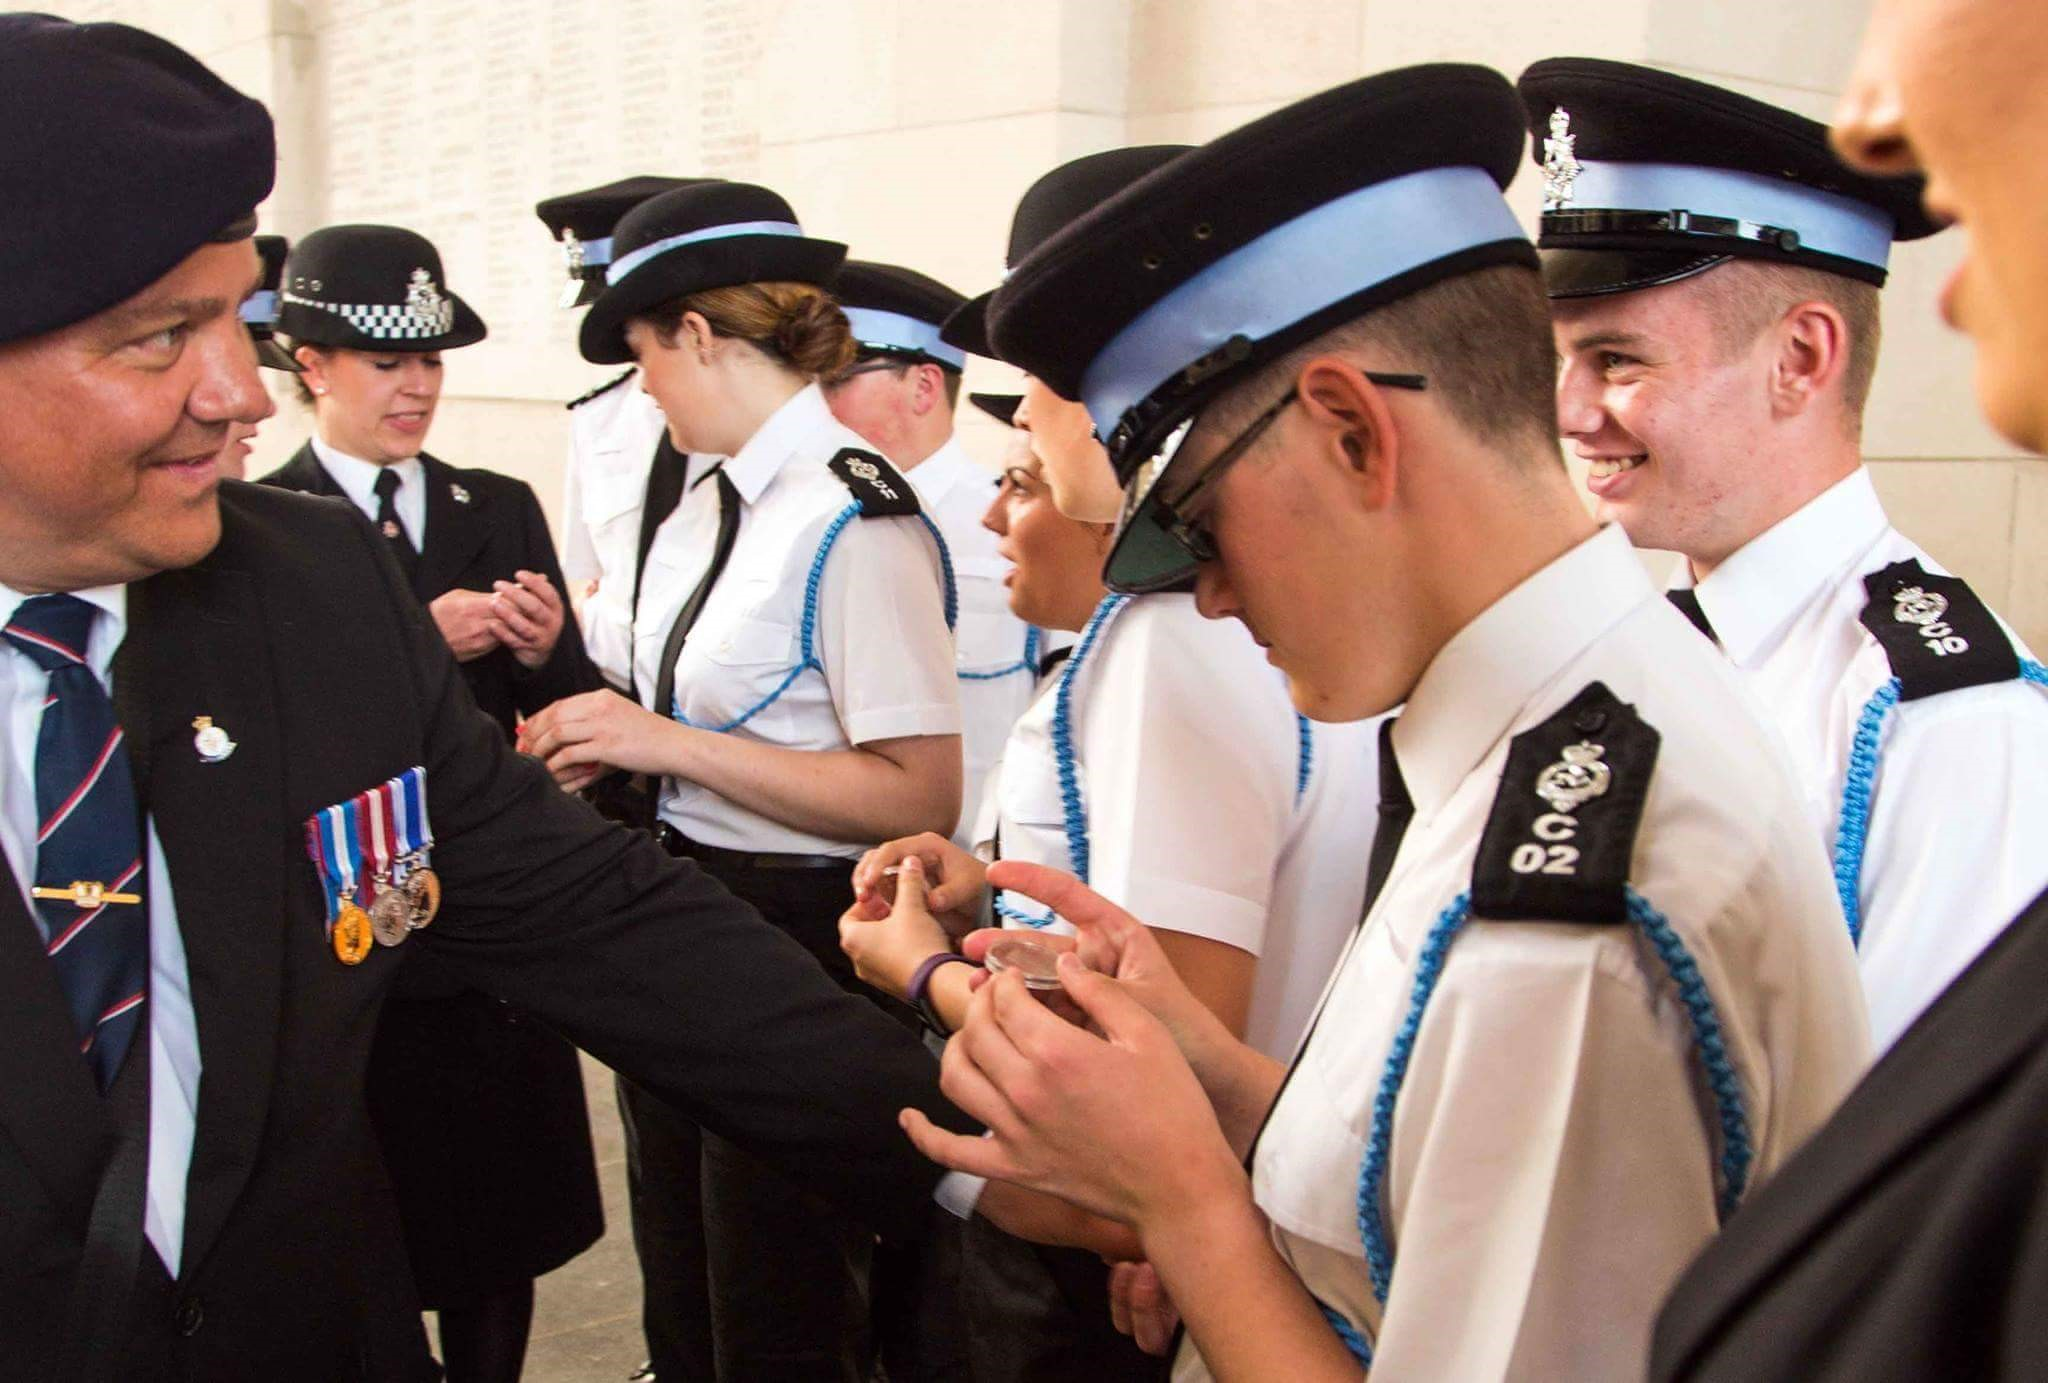 IOM Police Youth Scheme Pay Their Respects To Ypres